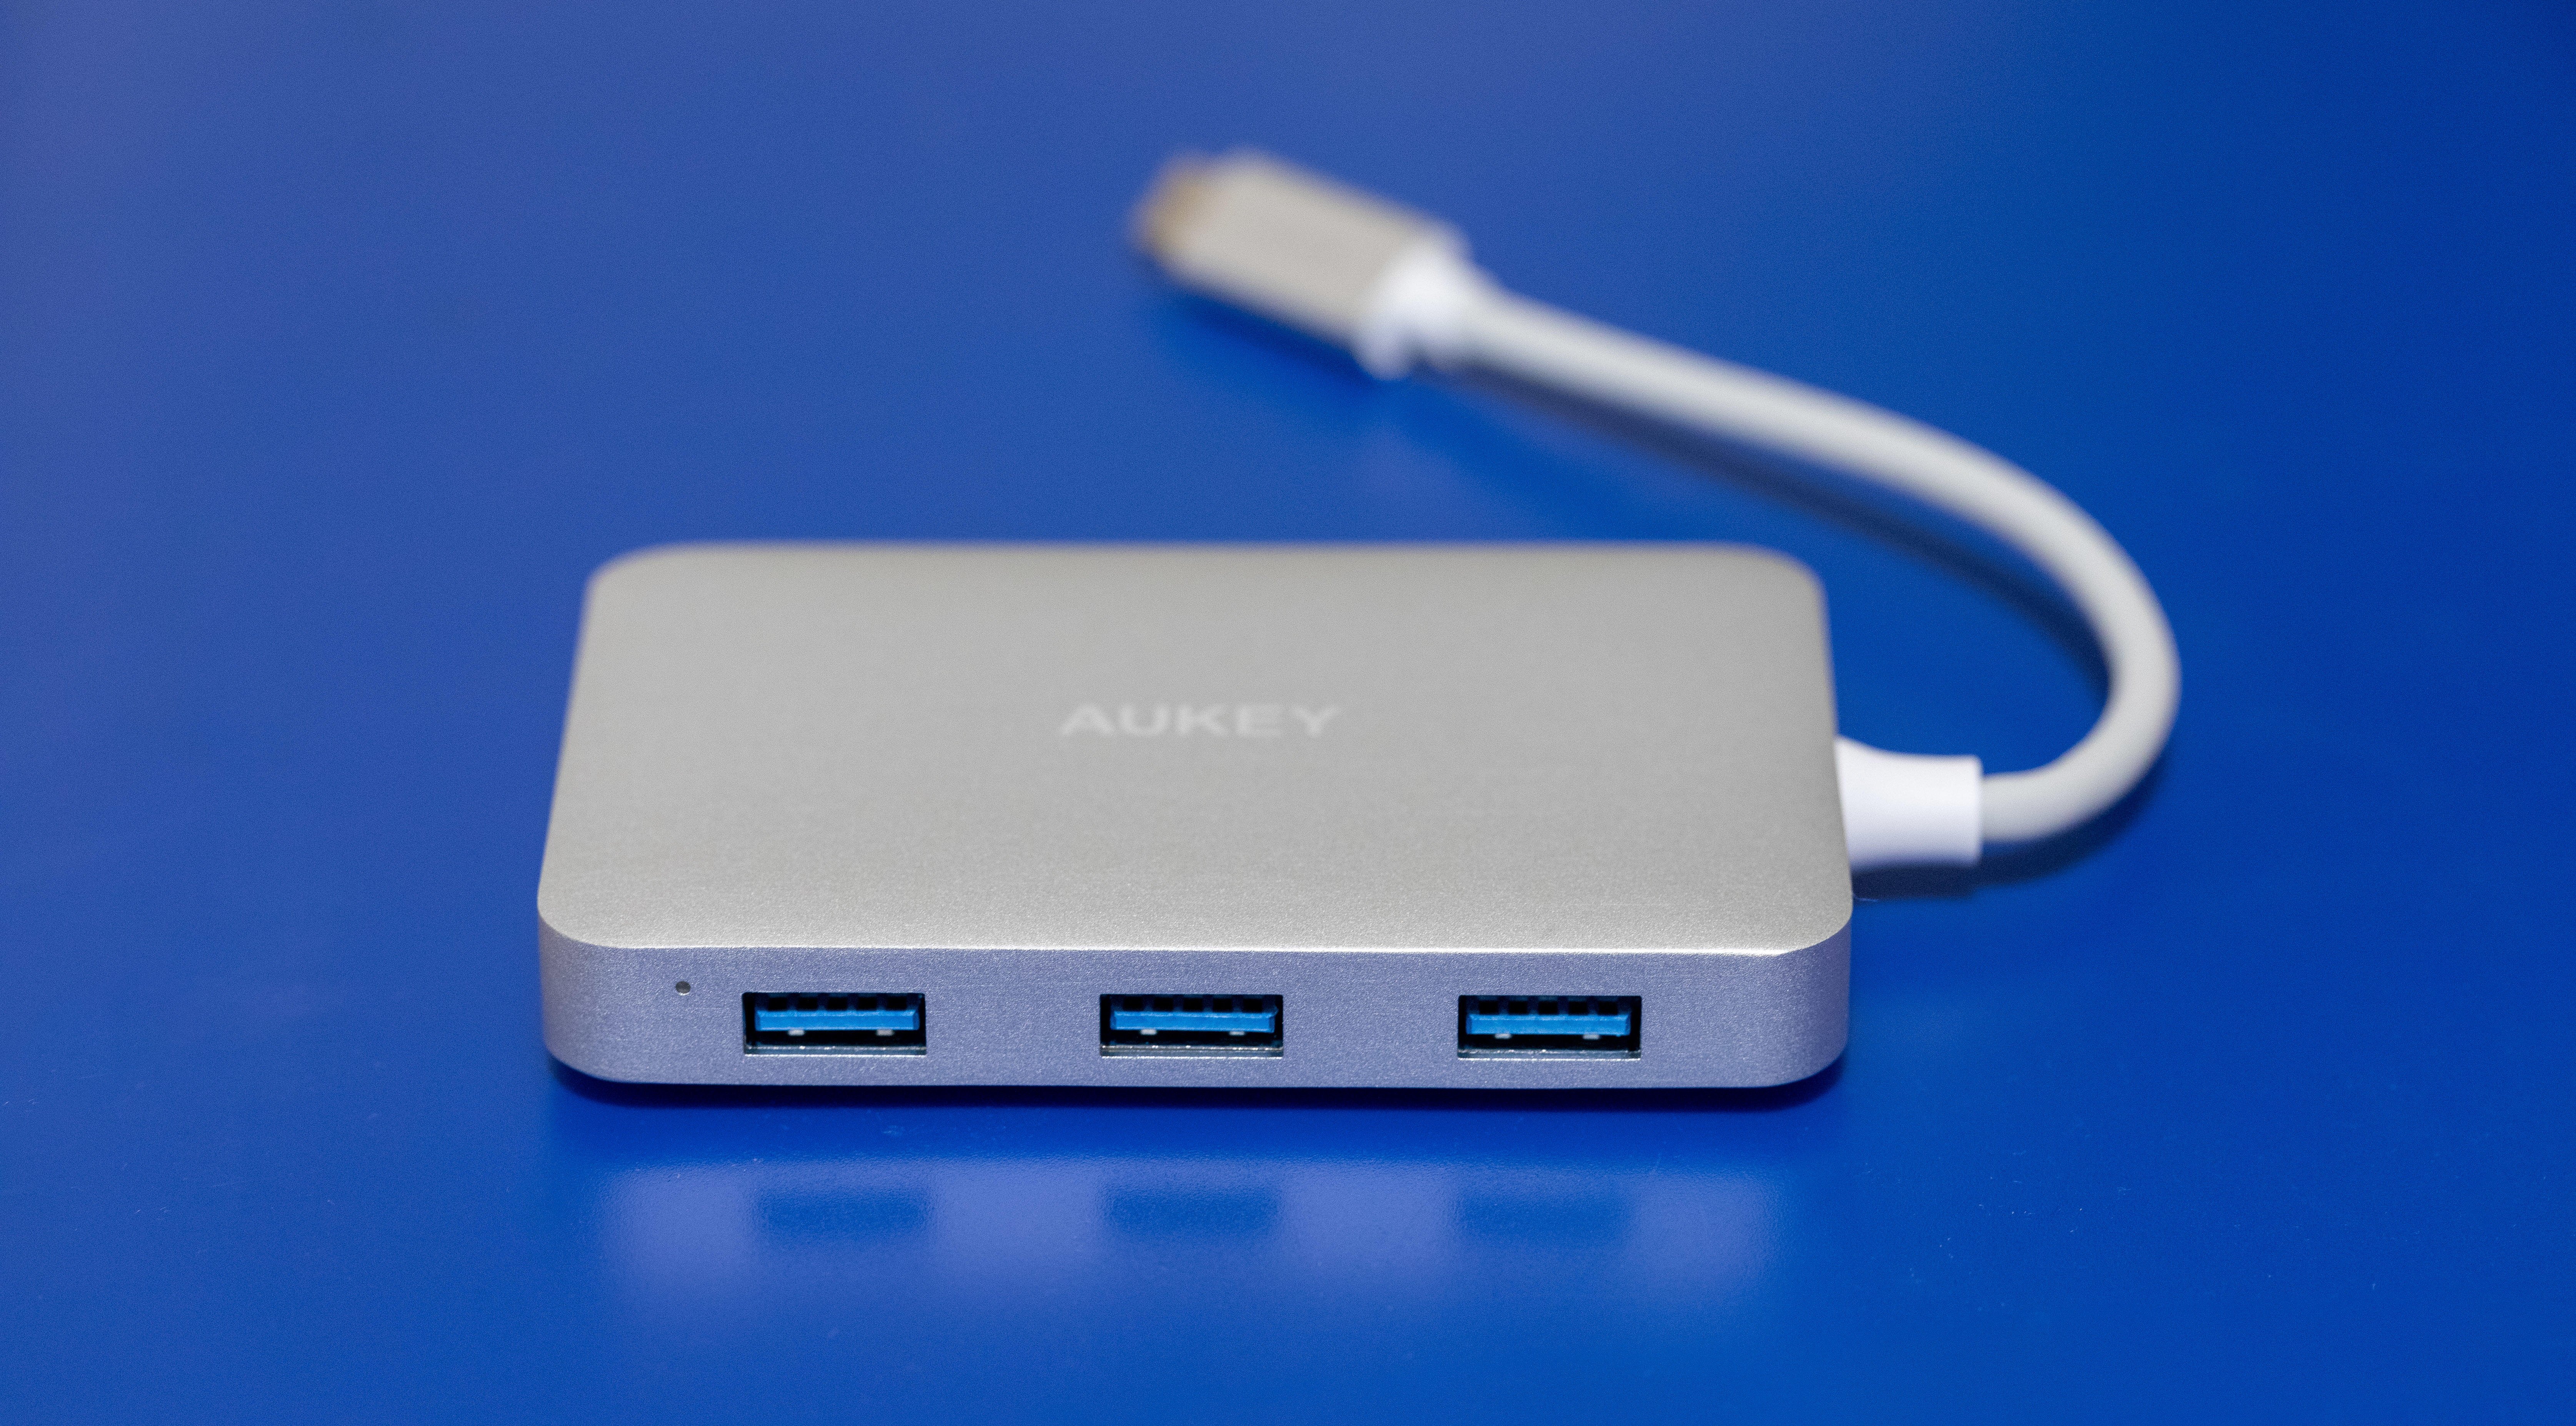 USB hubs are fine today -- as long as you only need old-style USB-A ports like on this Aukey model. USB 4 should allow lots of the more modern USB-C ports.